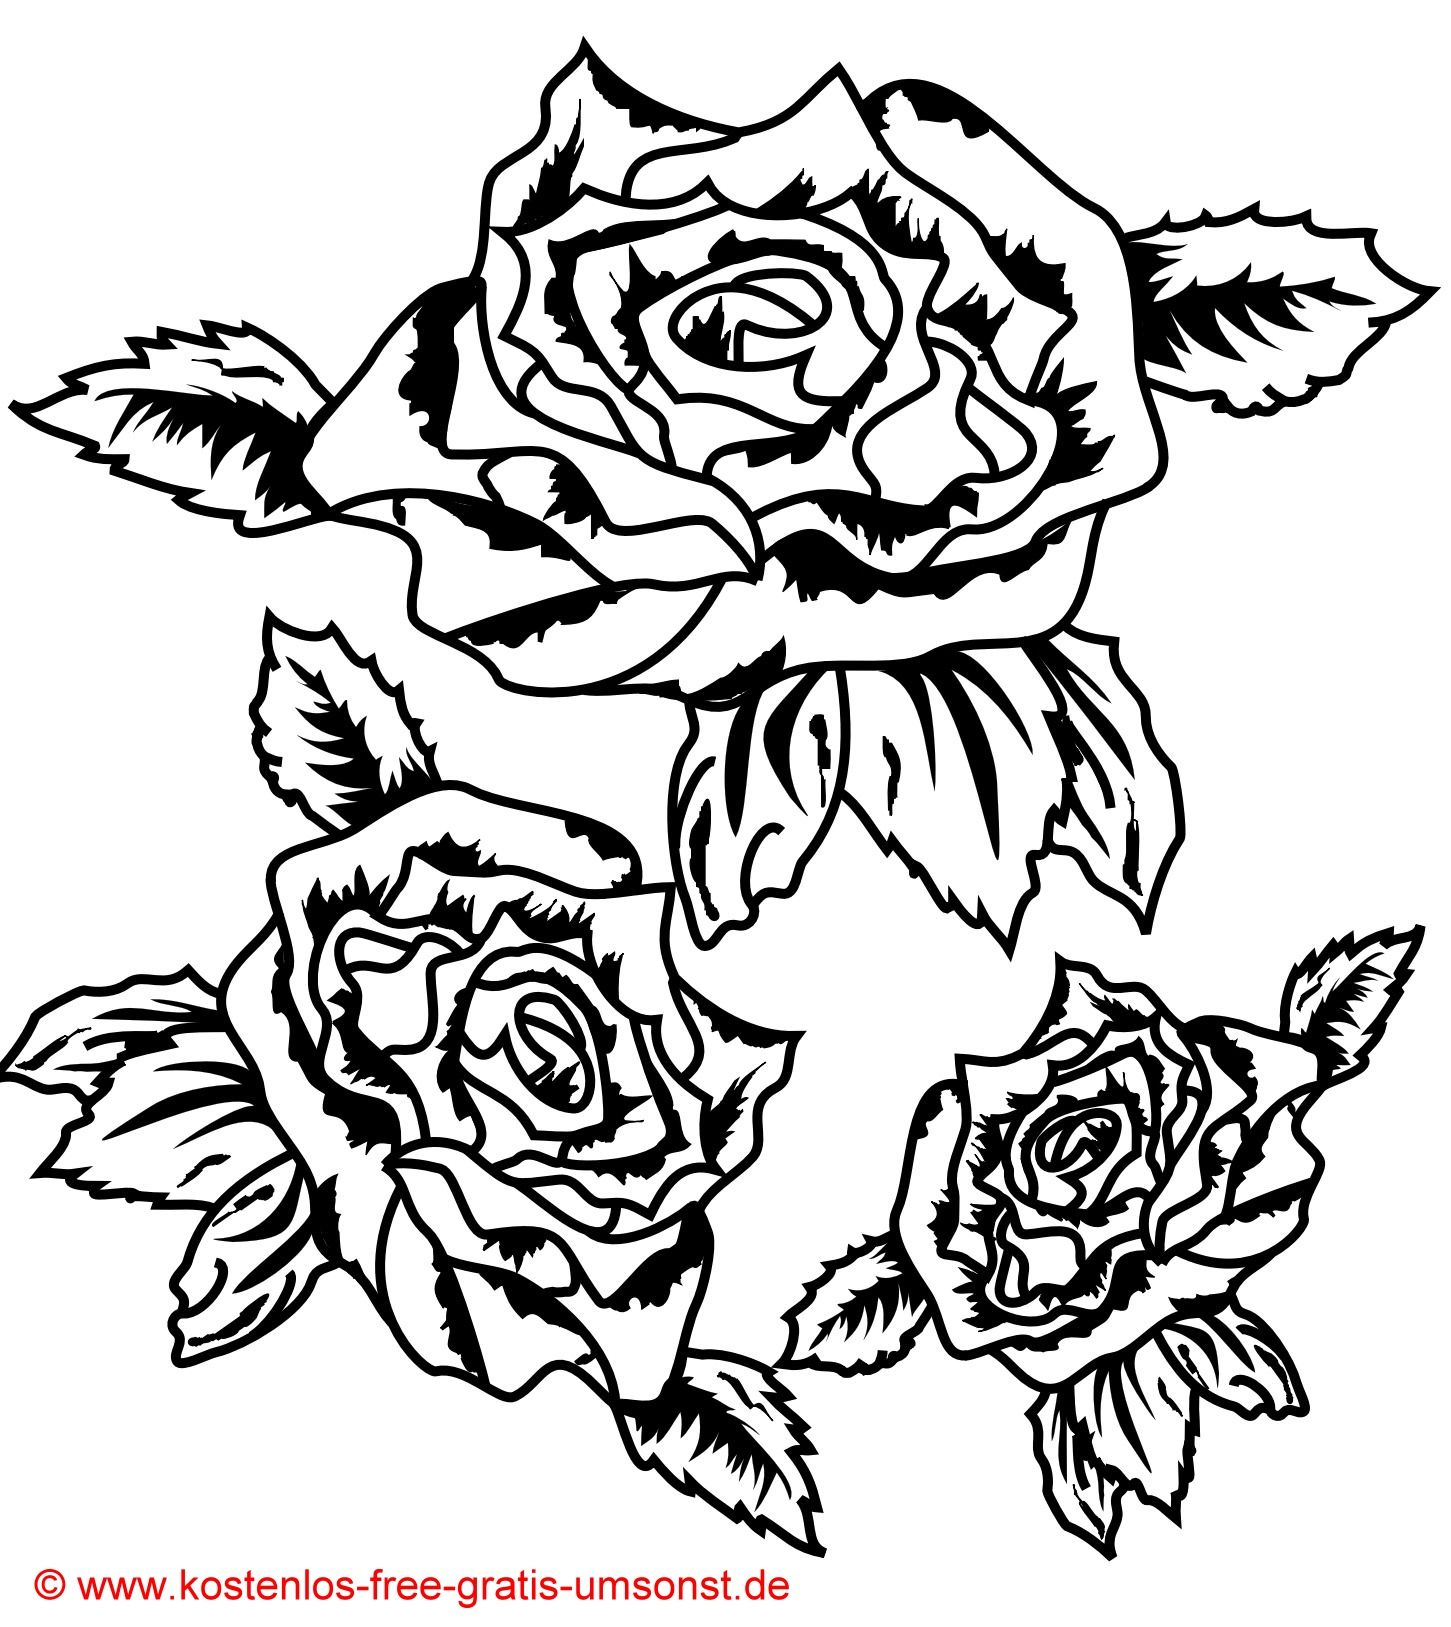 blumen tattoo vorlage rosen tattoo vorlage flowers tattoo motive flowers tattoo picture. Black Bedroom Furniture Sets. Home Design Ideas